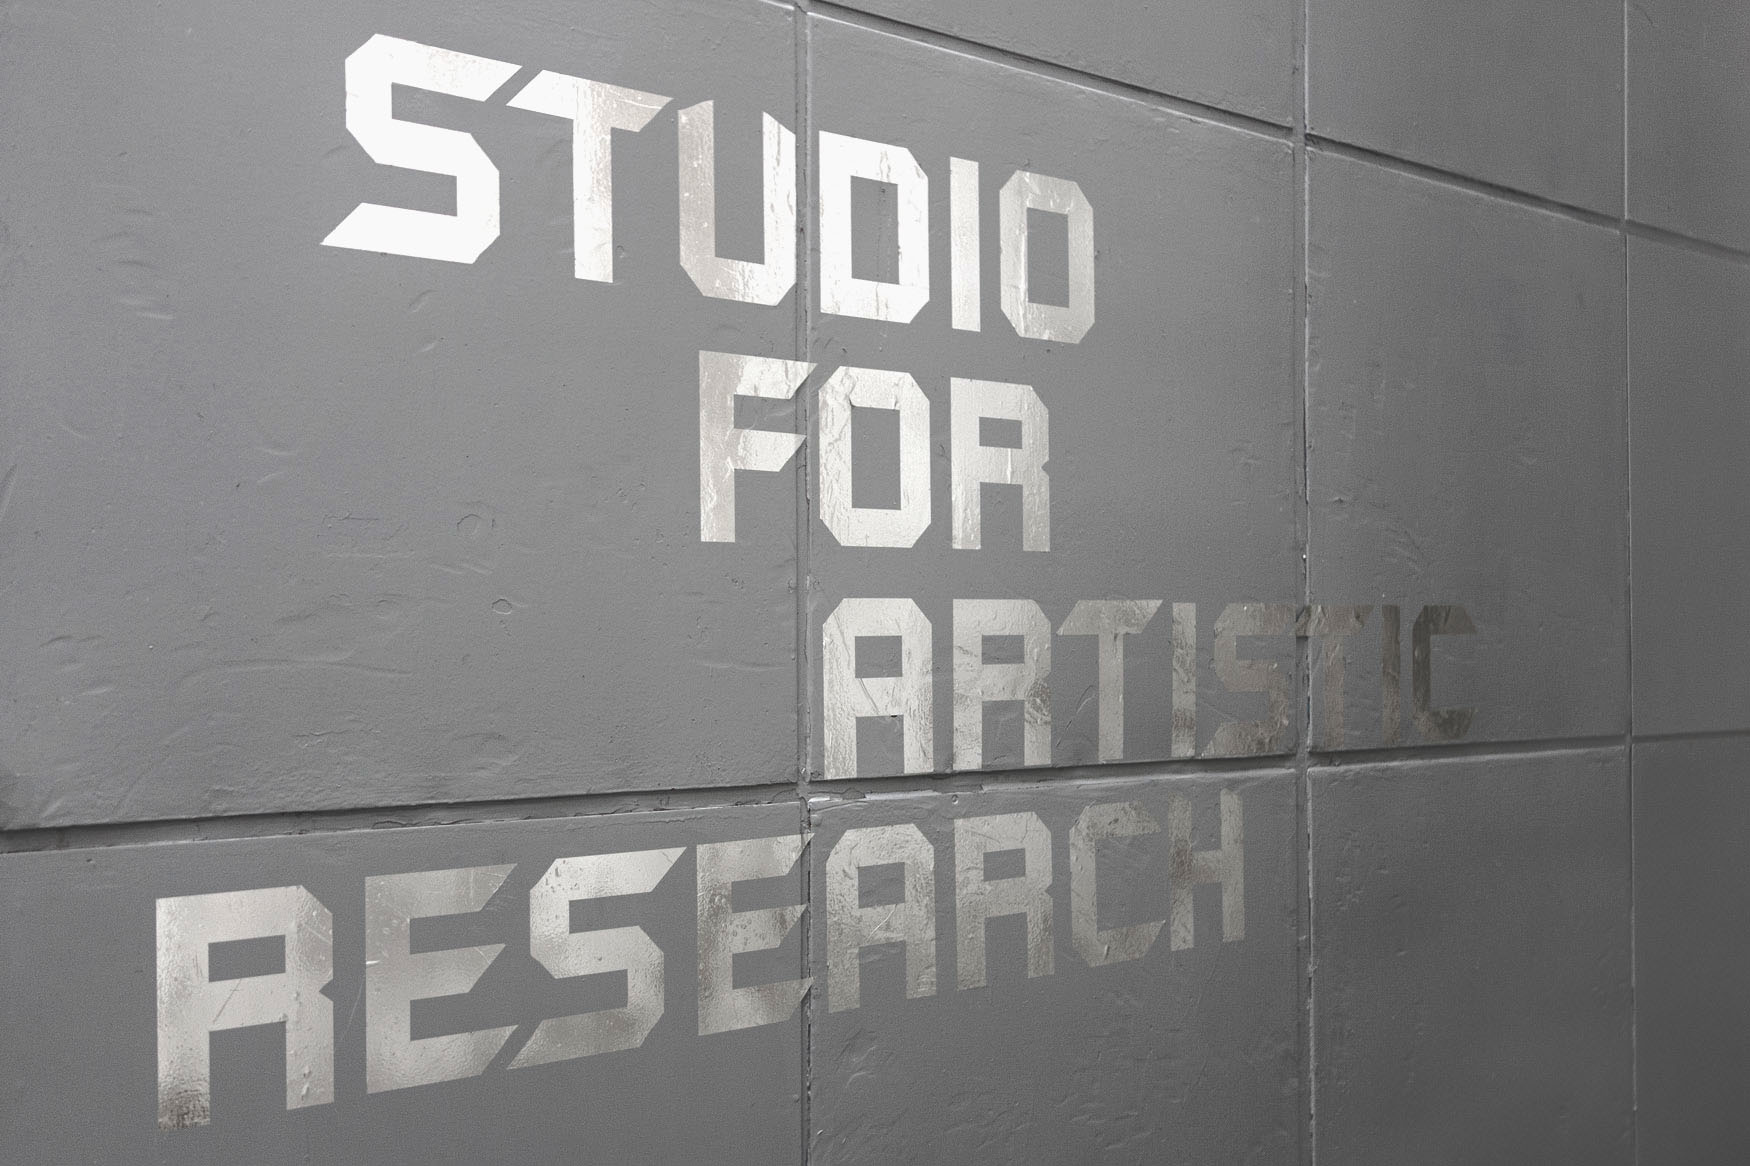 Studio For Artistic Research